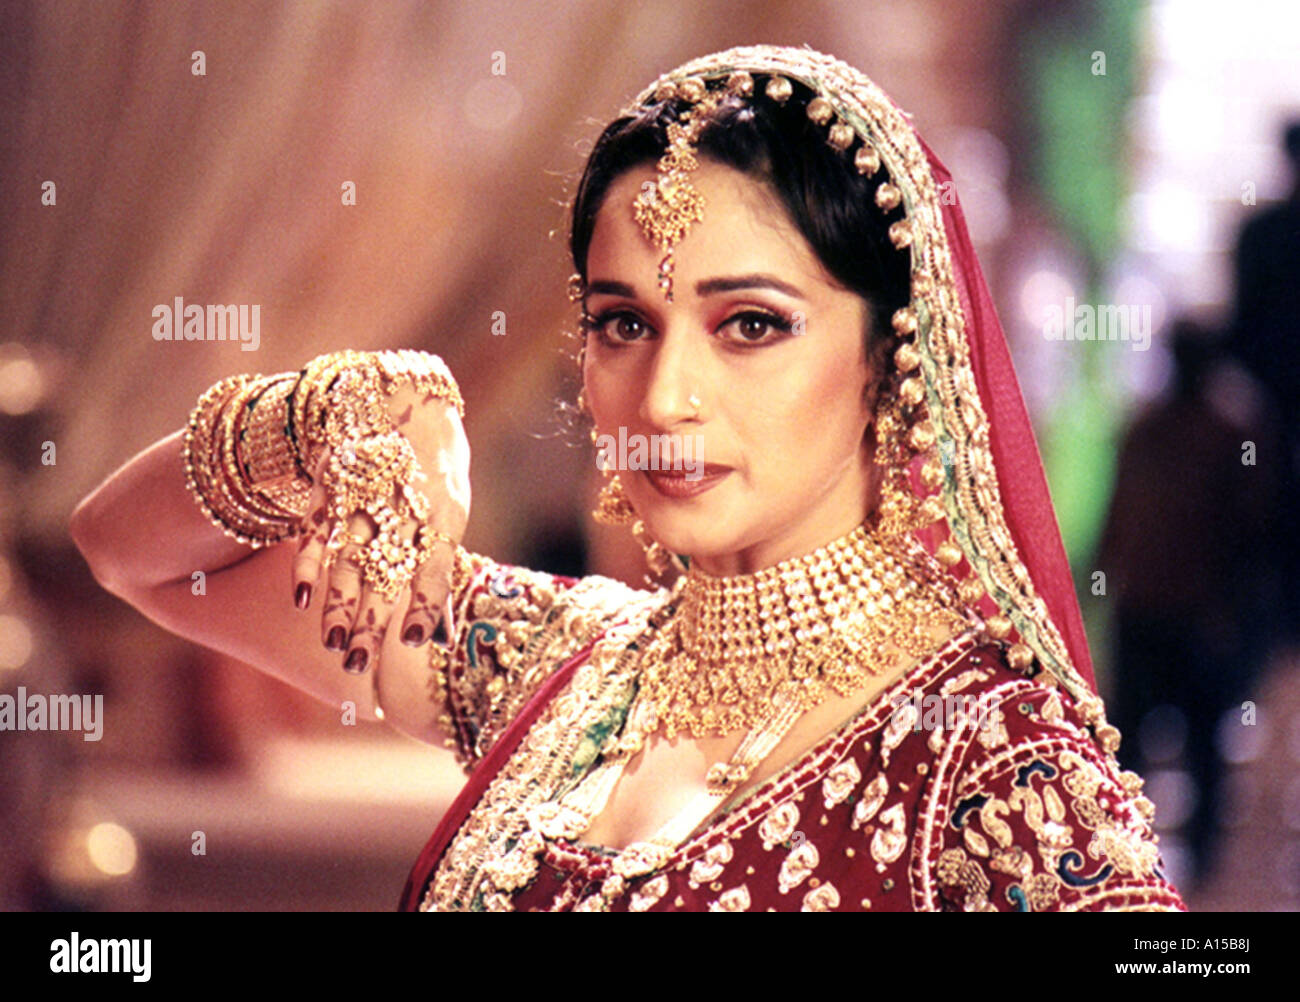 Can, too xxx madhuri dixit